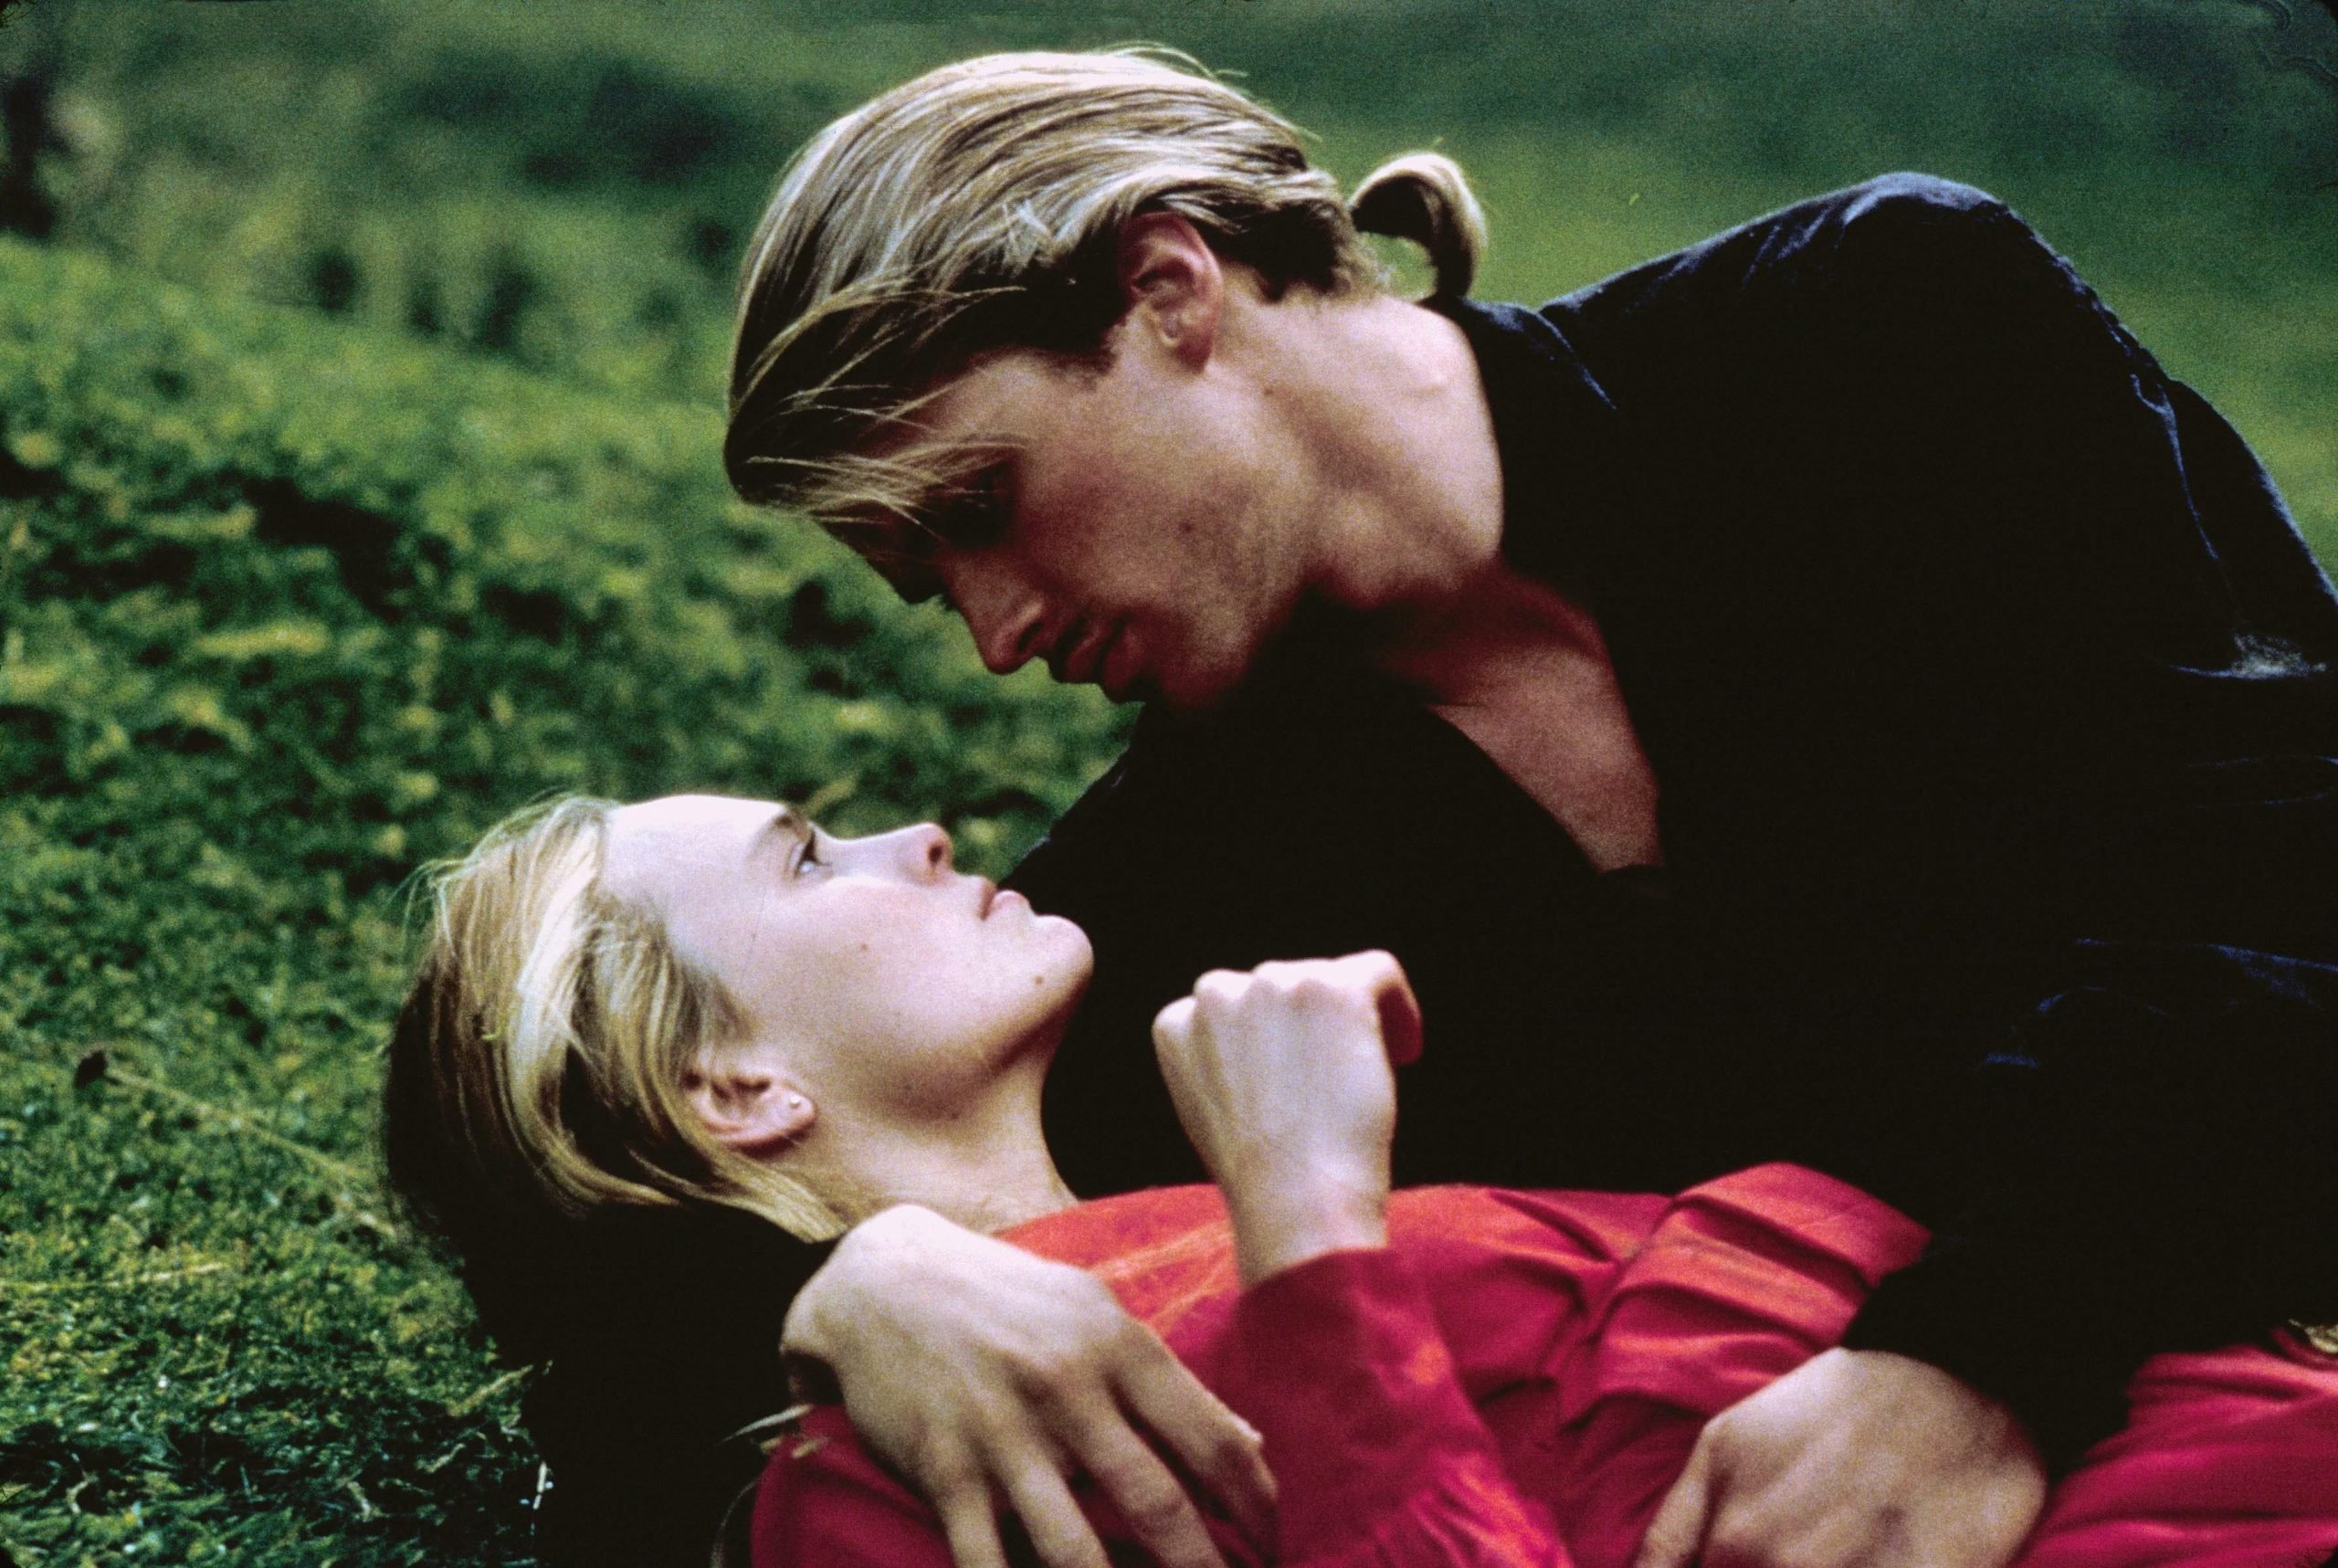 68056d33 0a1d 4962 814a 787a88a14b2c XXX PRINCESS BRIDE MOV jy 1715 scaled 10 Things You Never Knew About Cary Elwes